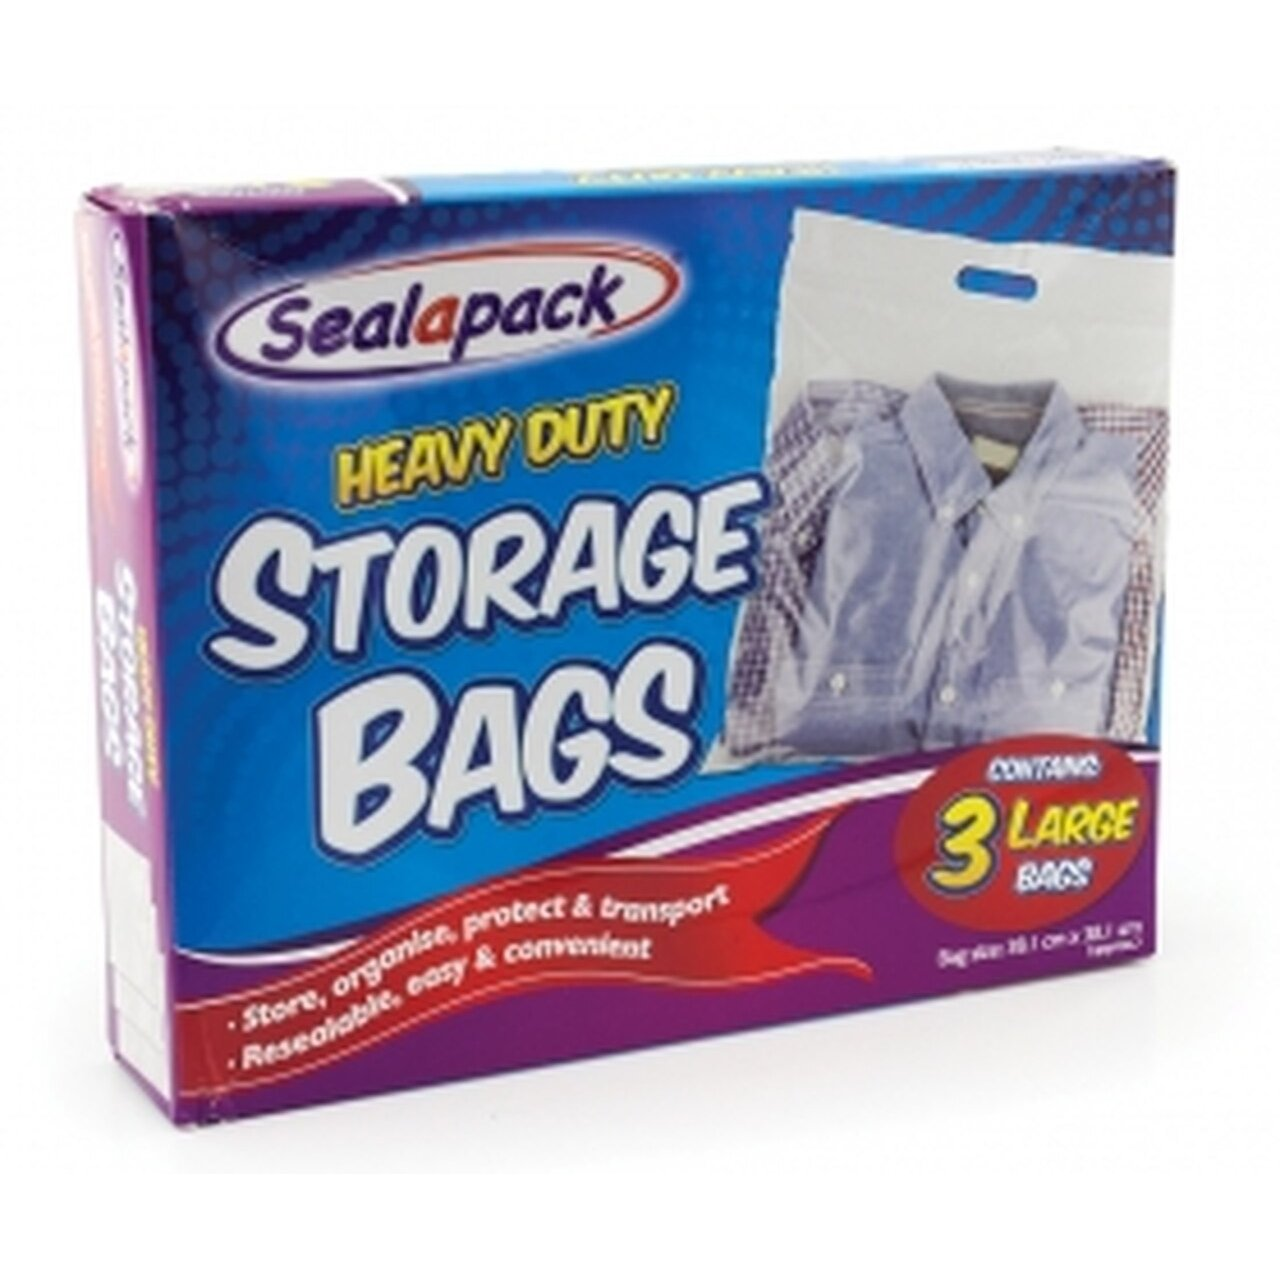 Heavy Duty Storage Bag - Large (3 Pack)